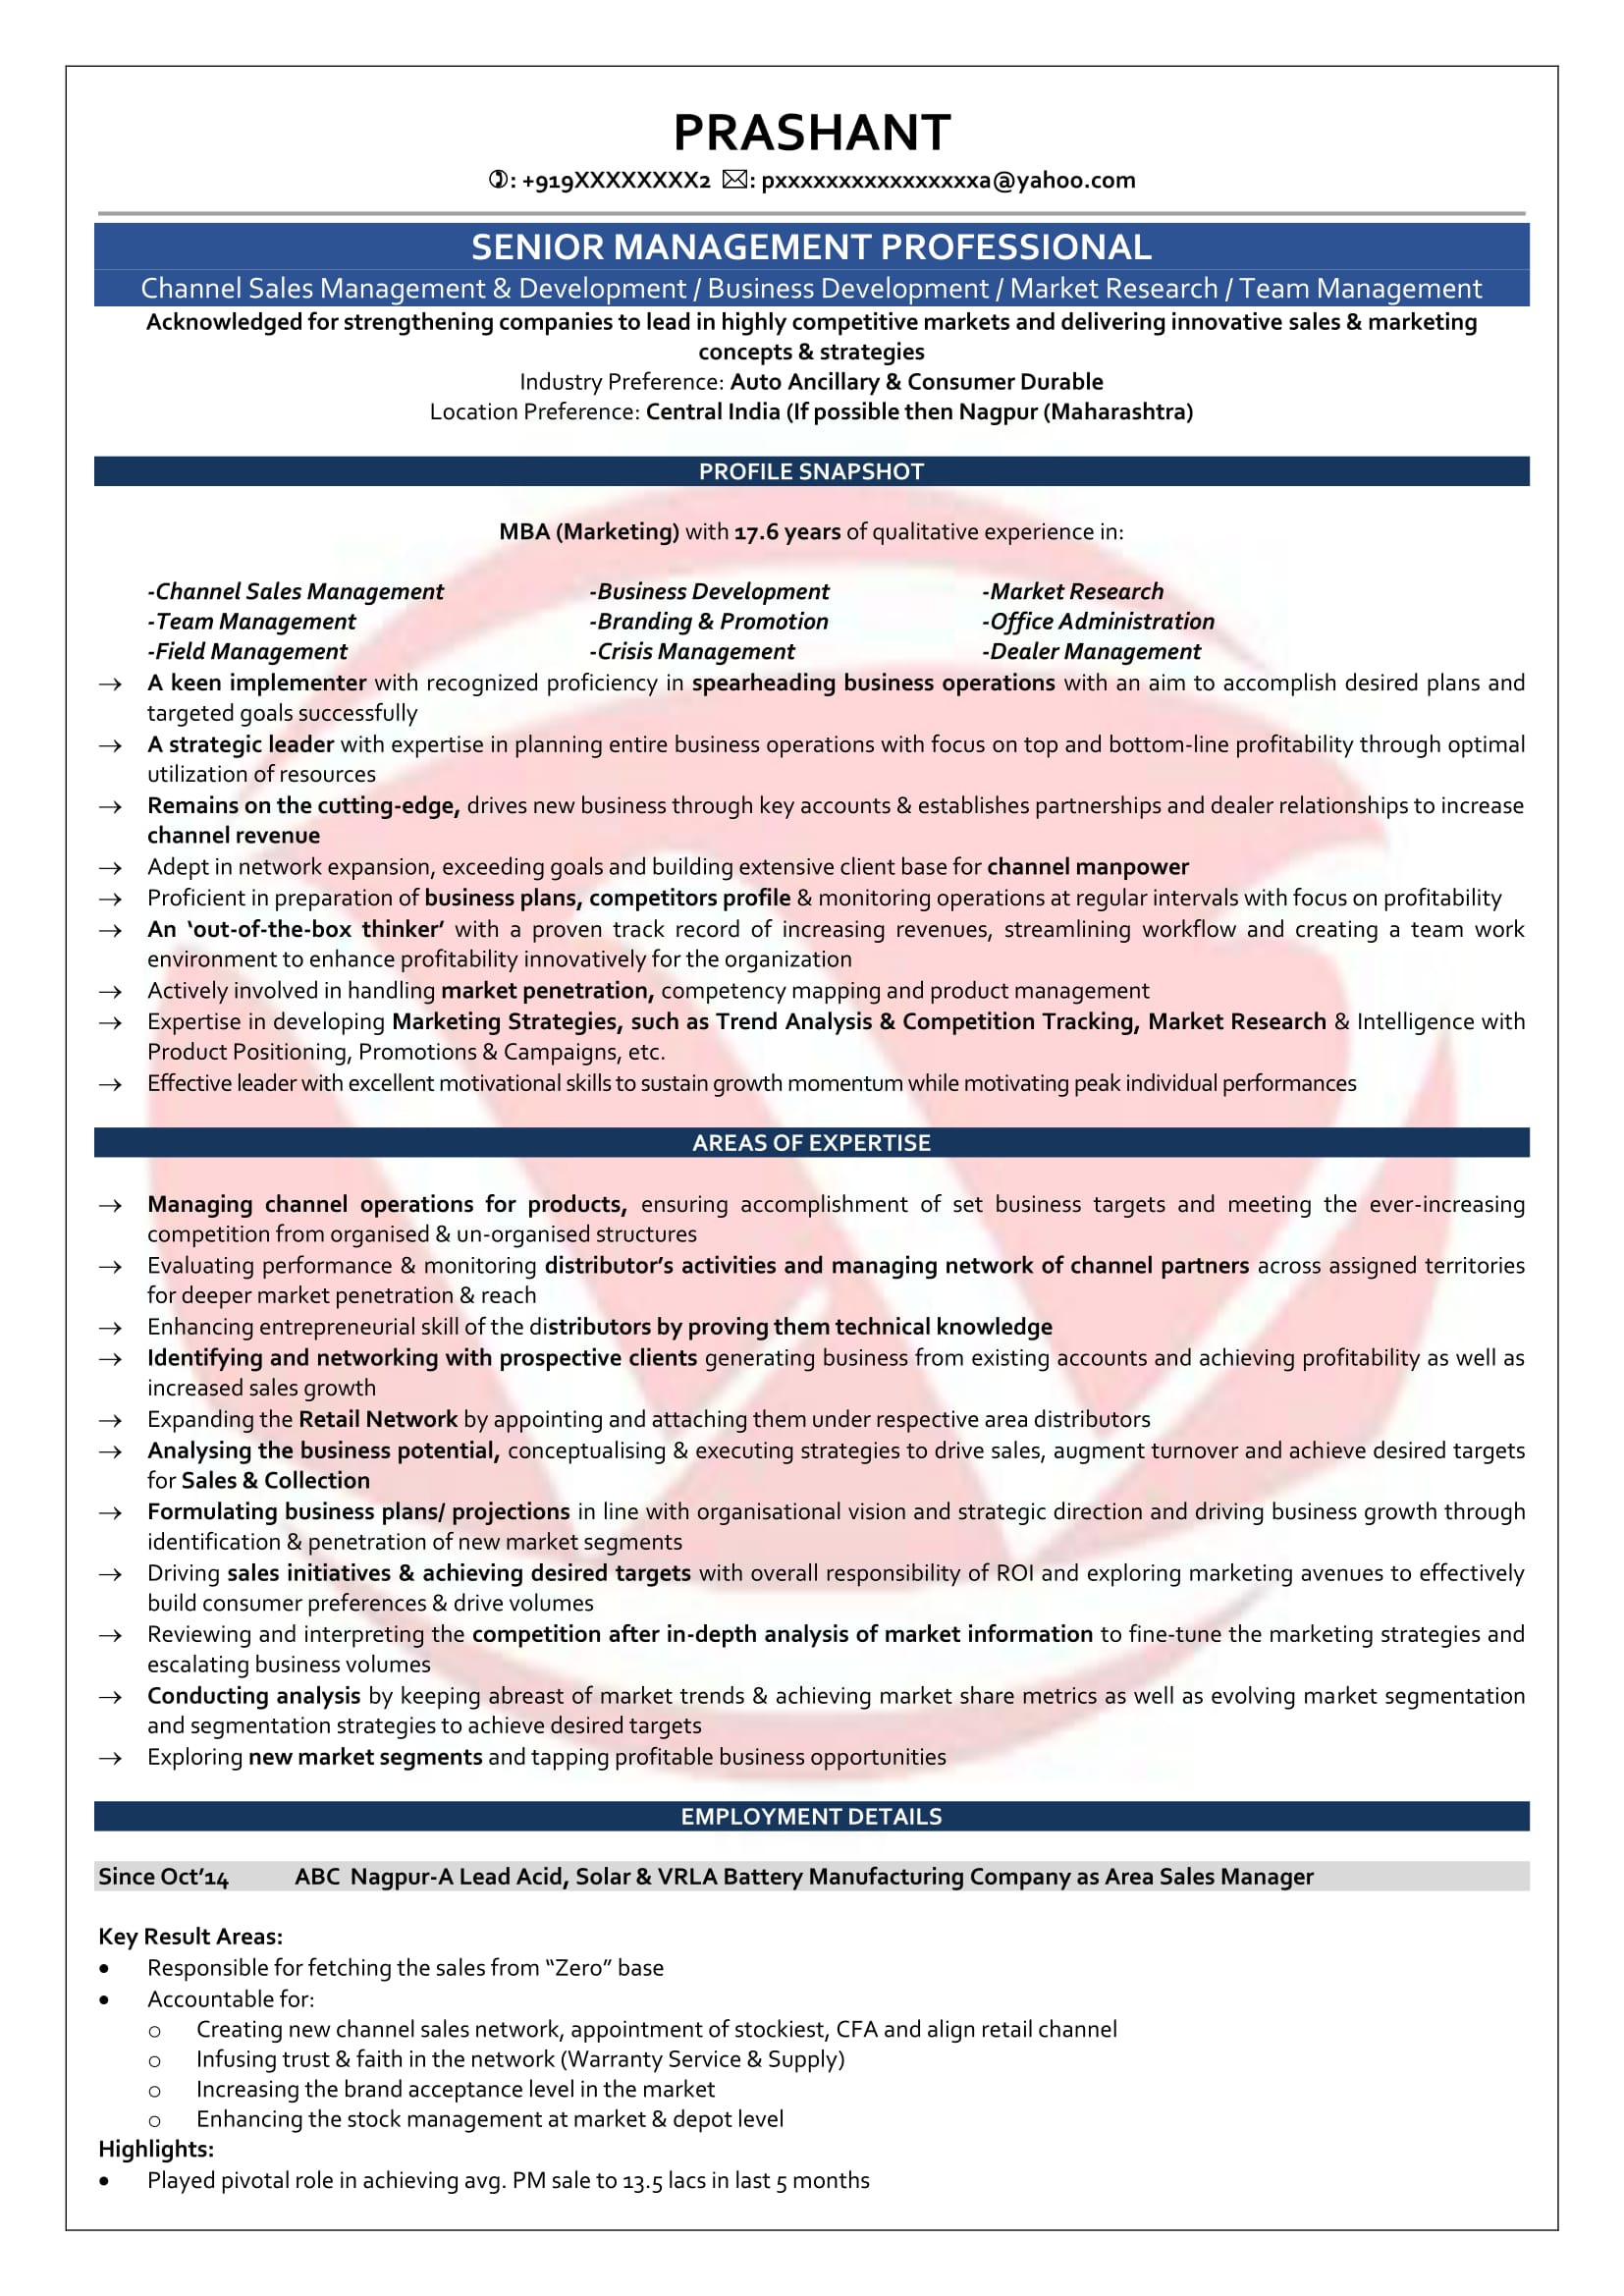 sample resume sales manager